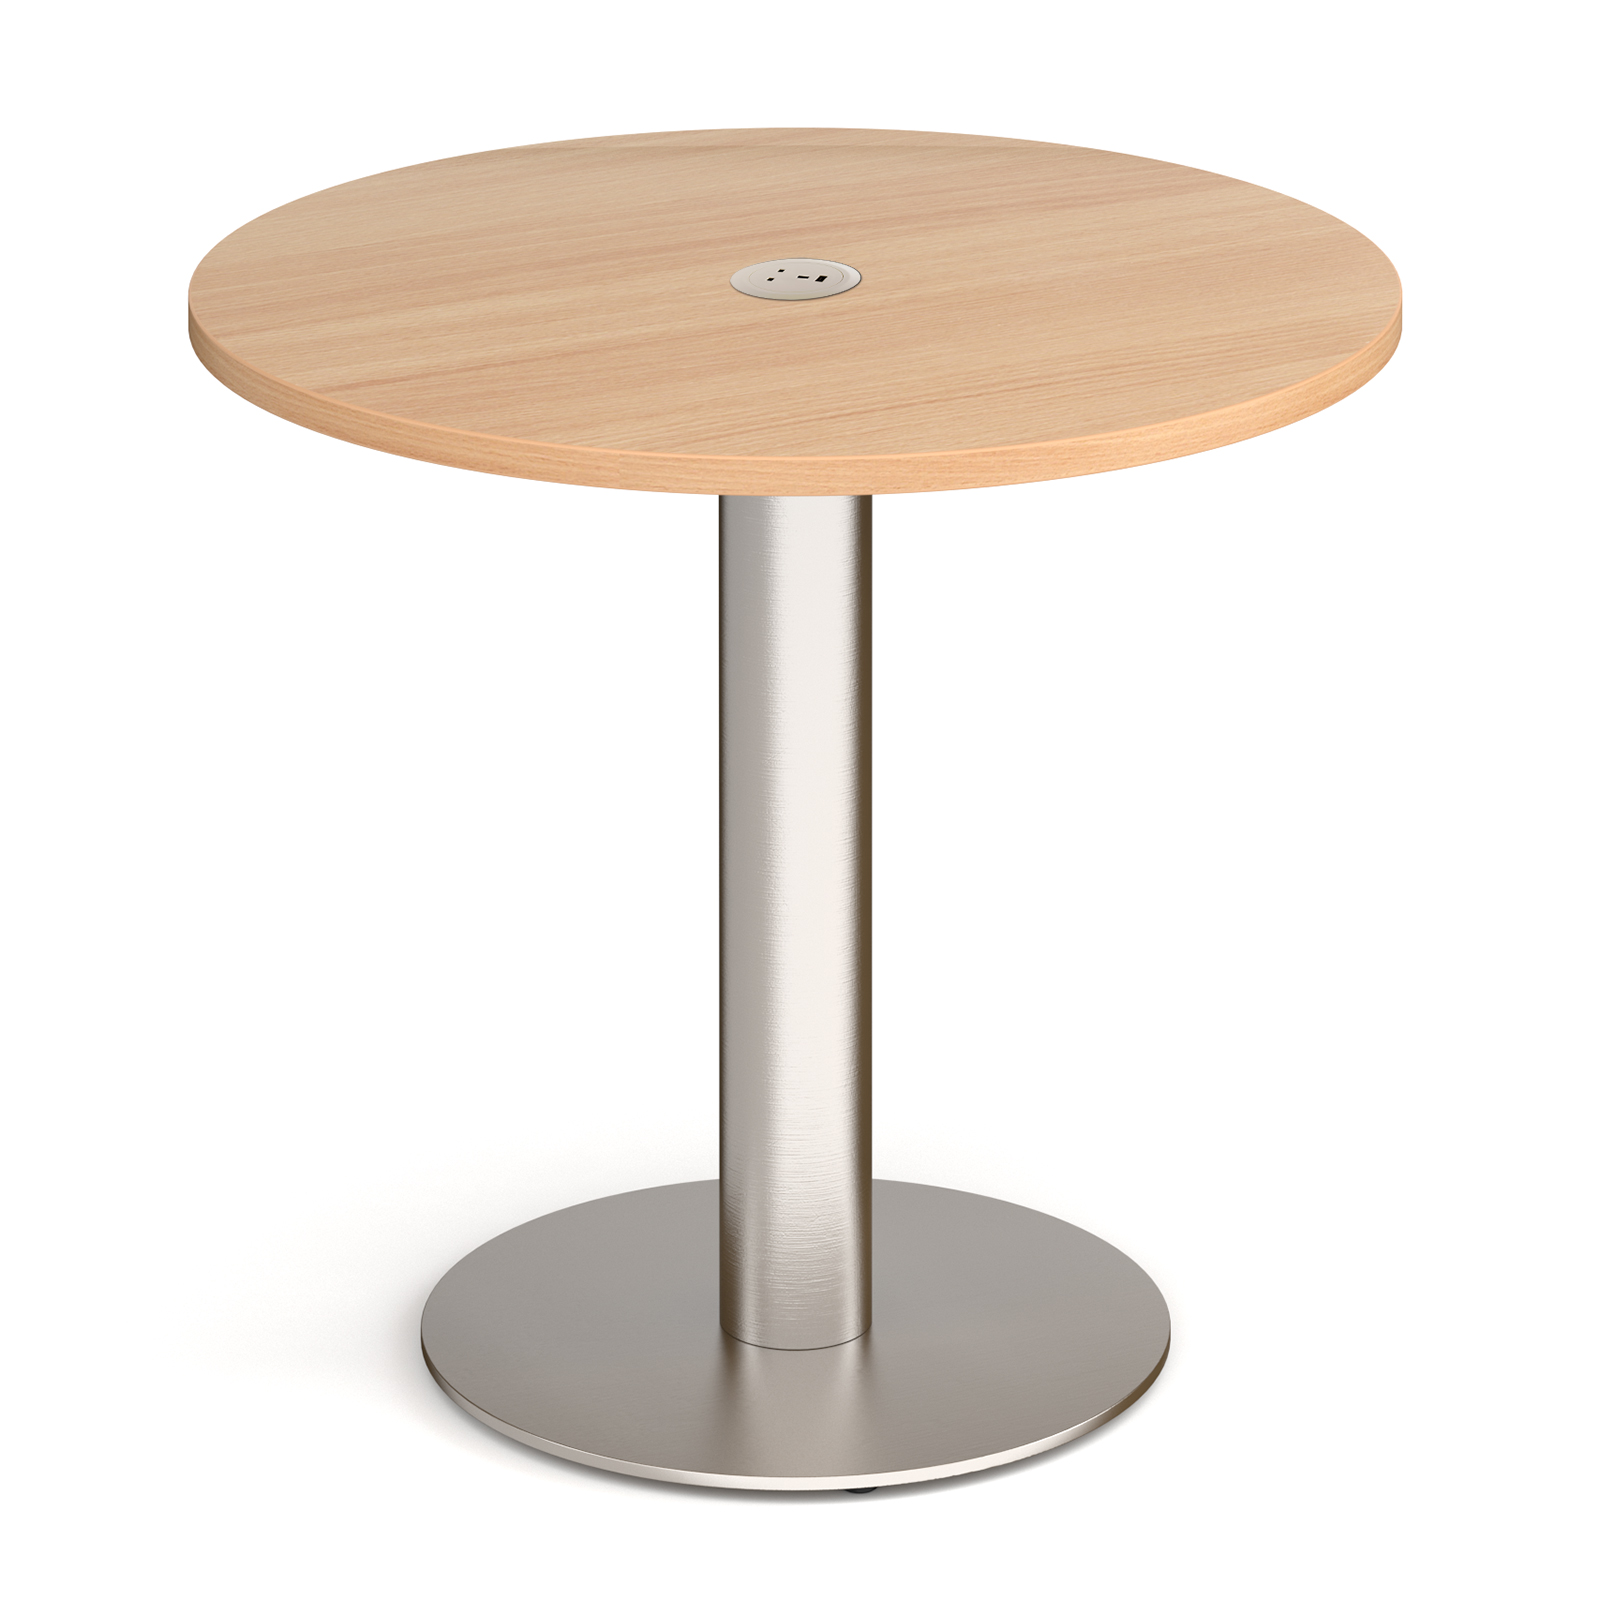 Monza circular dining table 800mm in beech with central circular cutout and Ion power module in white